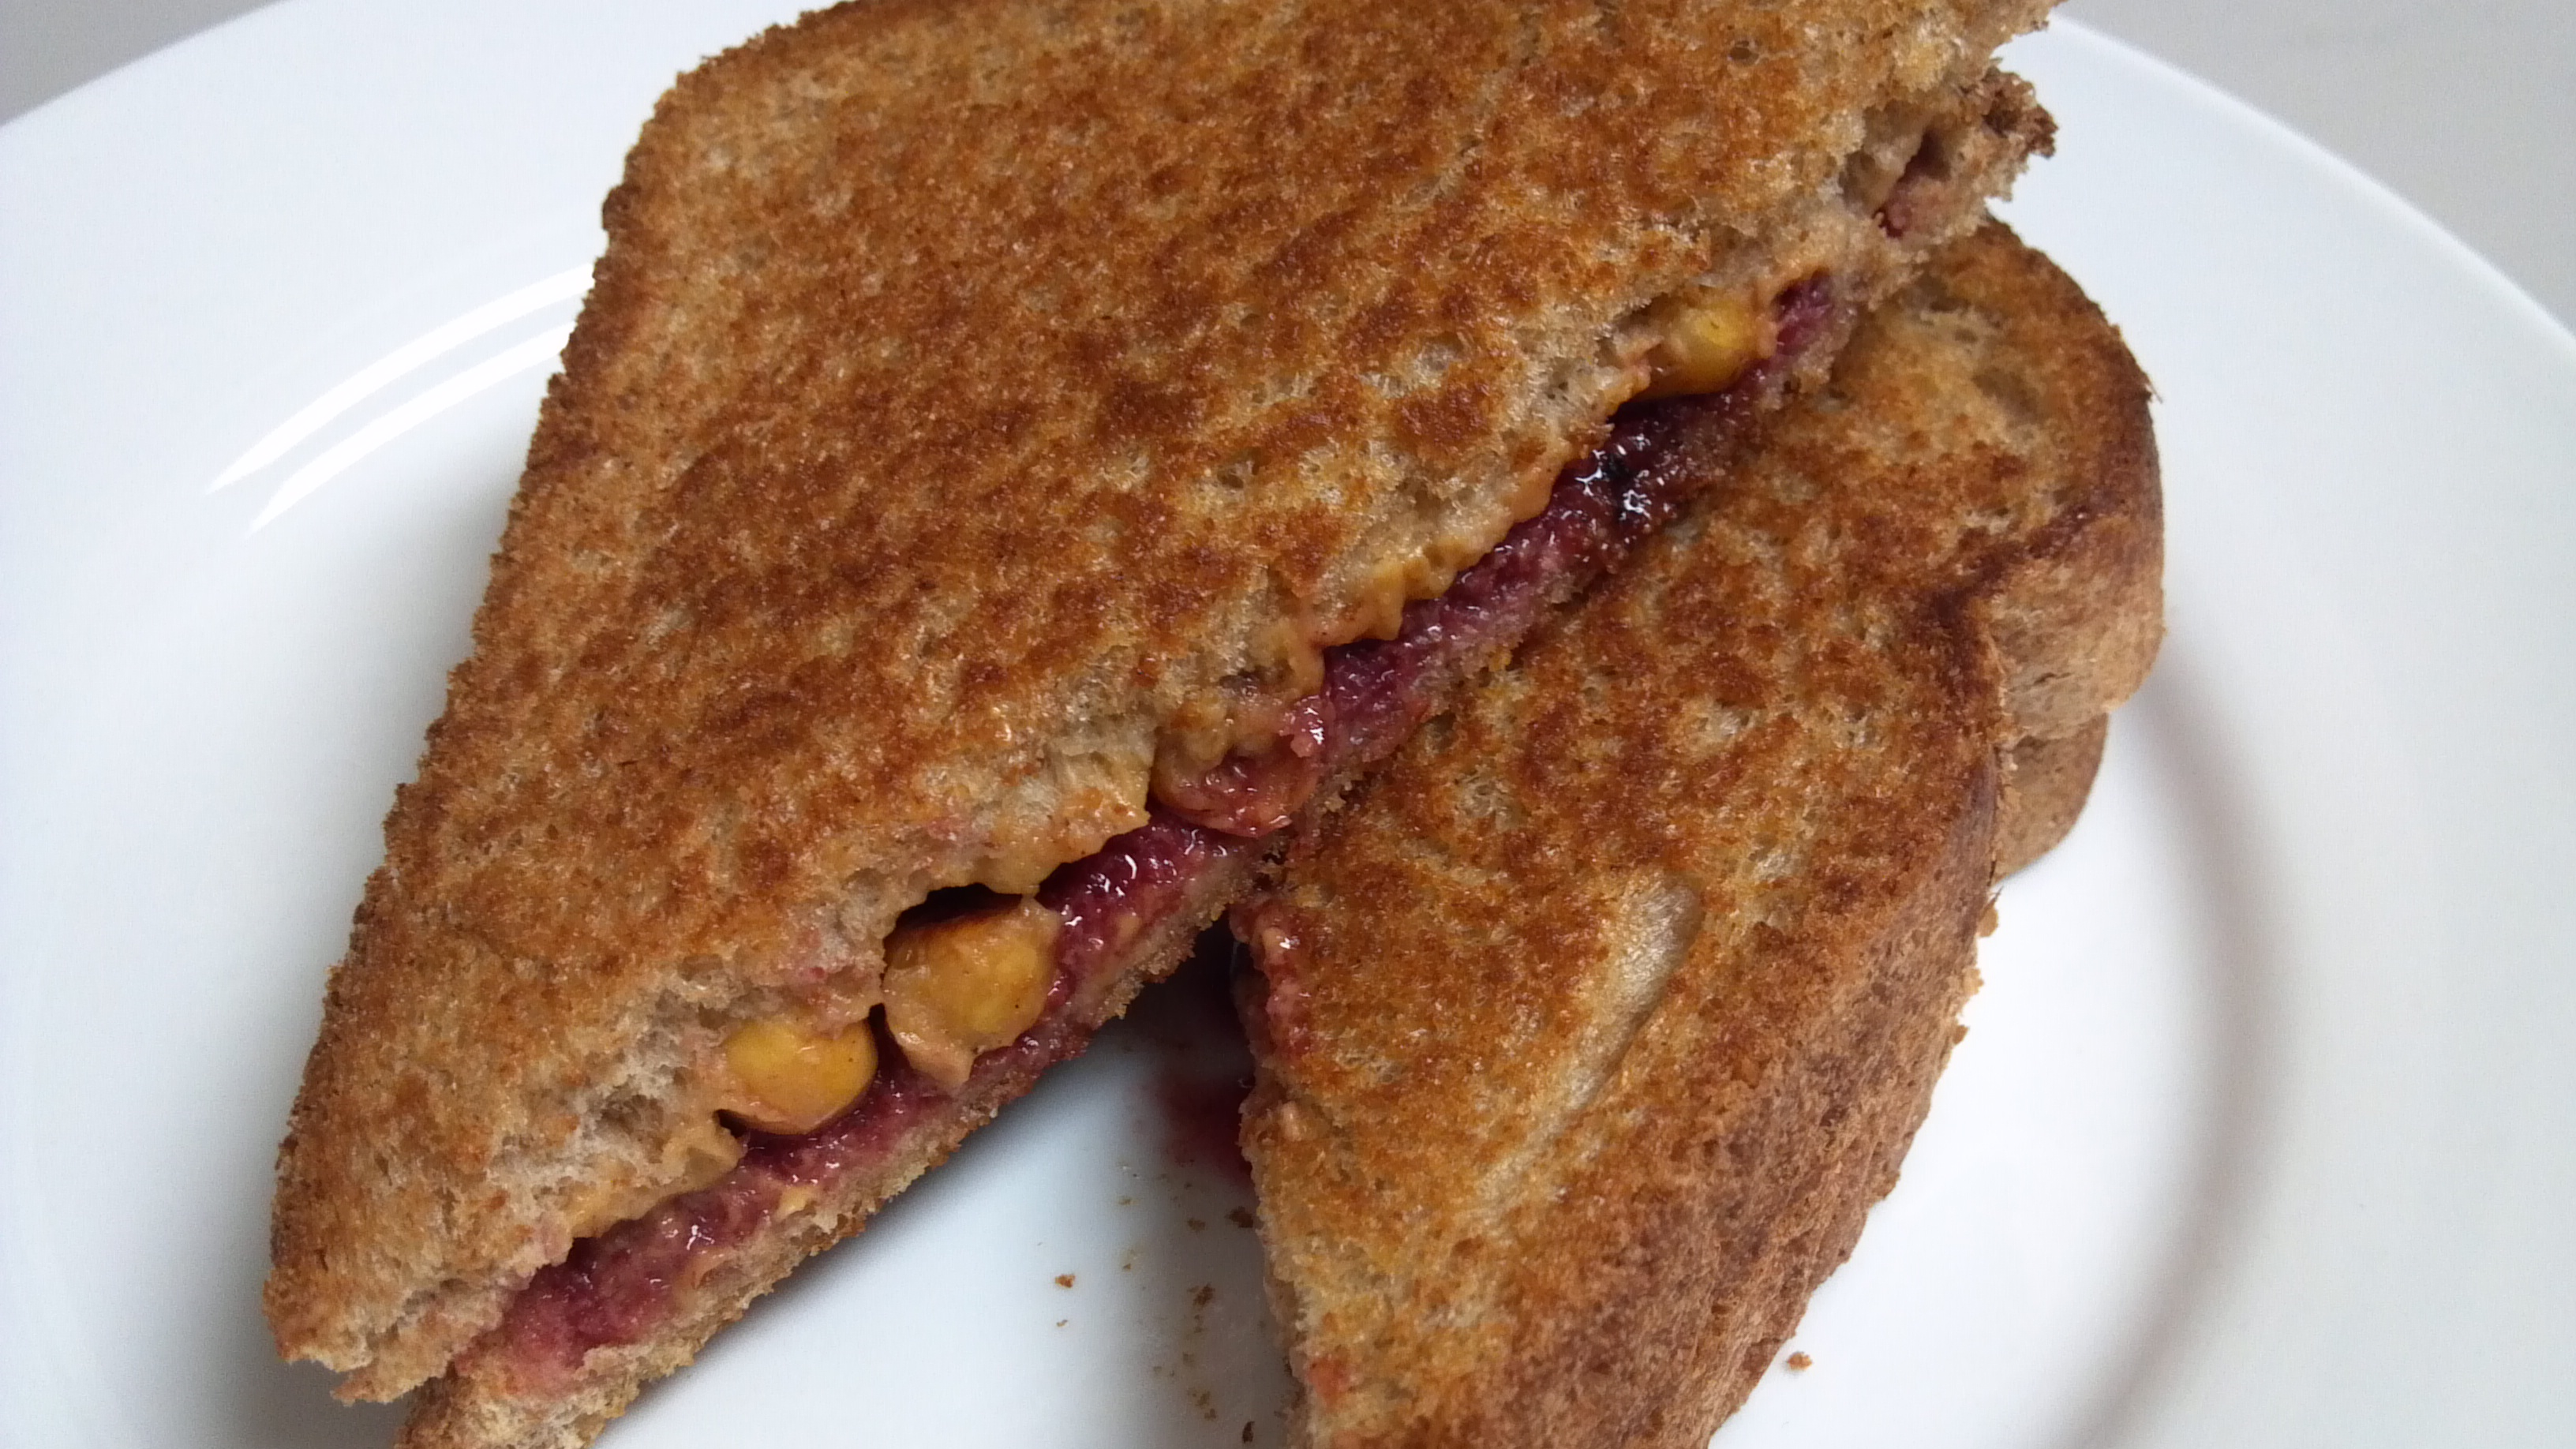 ... butter and jelly muffins grilled peanut butter and jelly sandwich